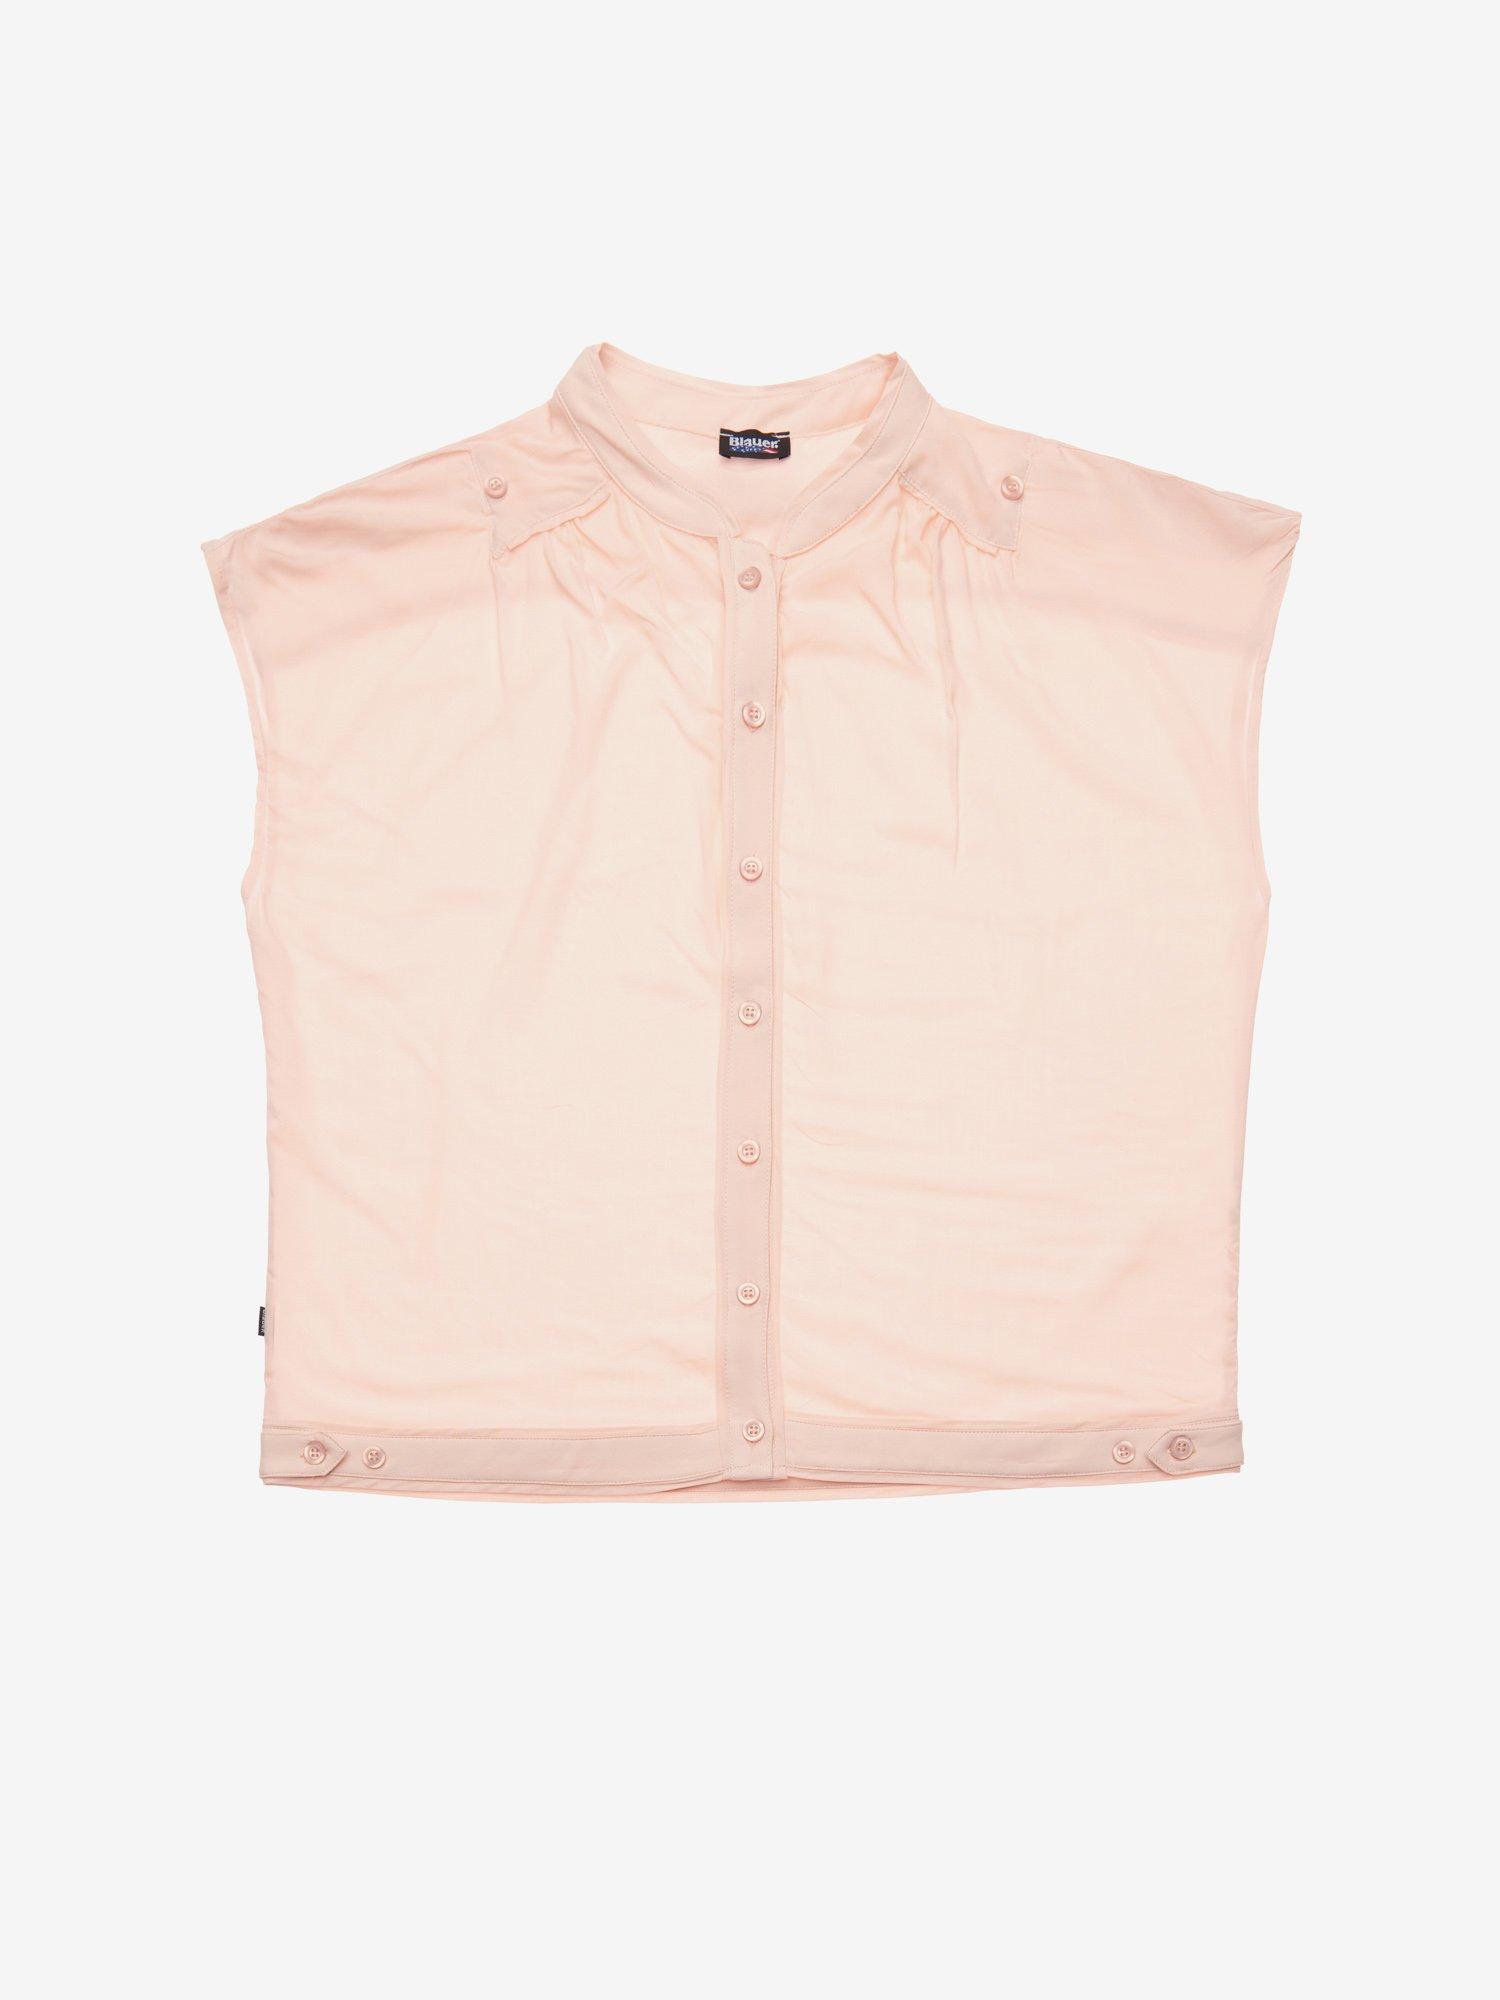 Blauer - SLEEVELESS SHIRT - Cameo Rose - Blauer